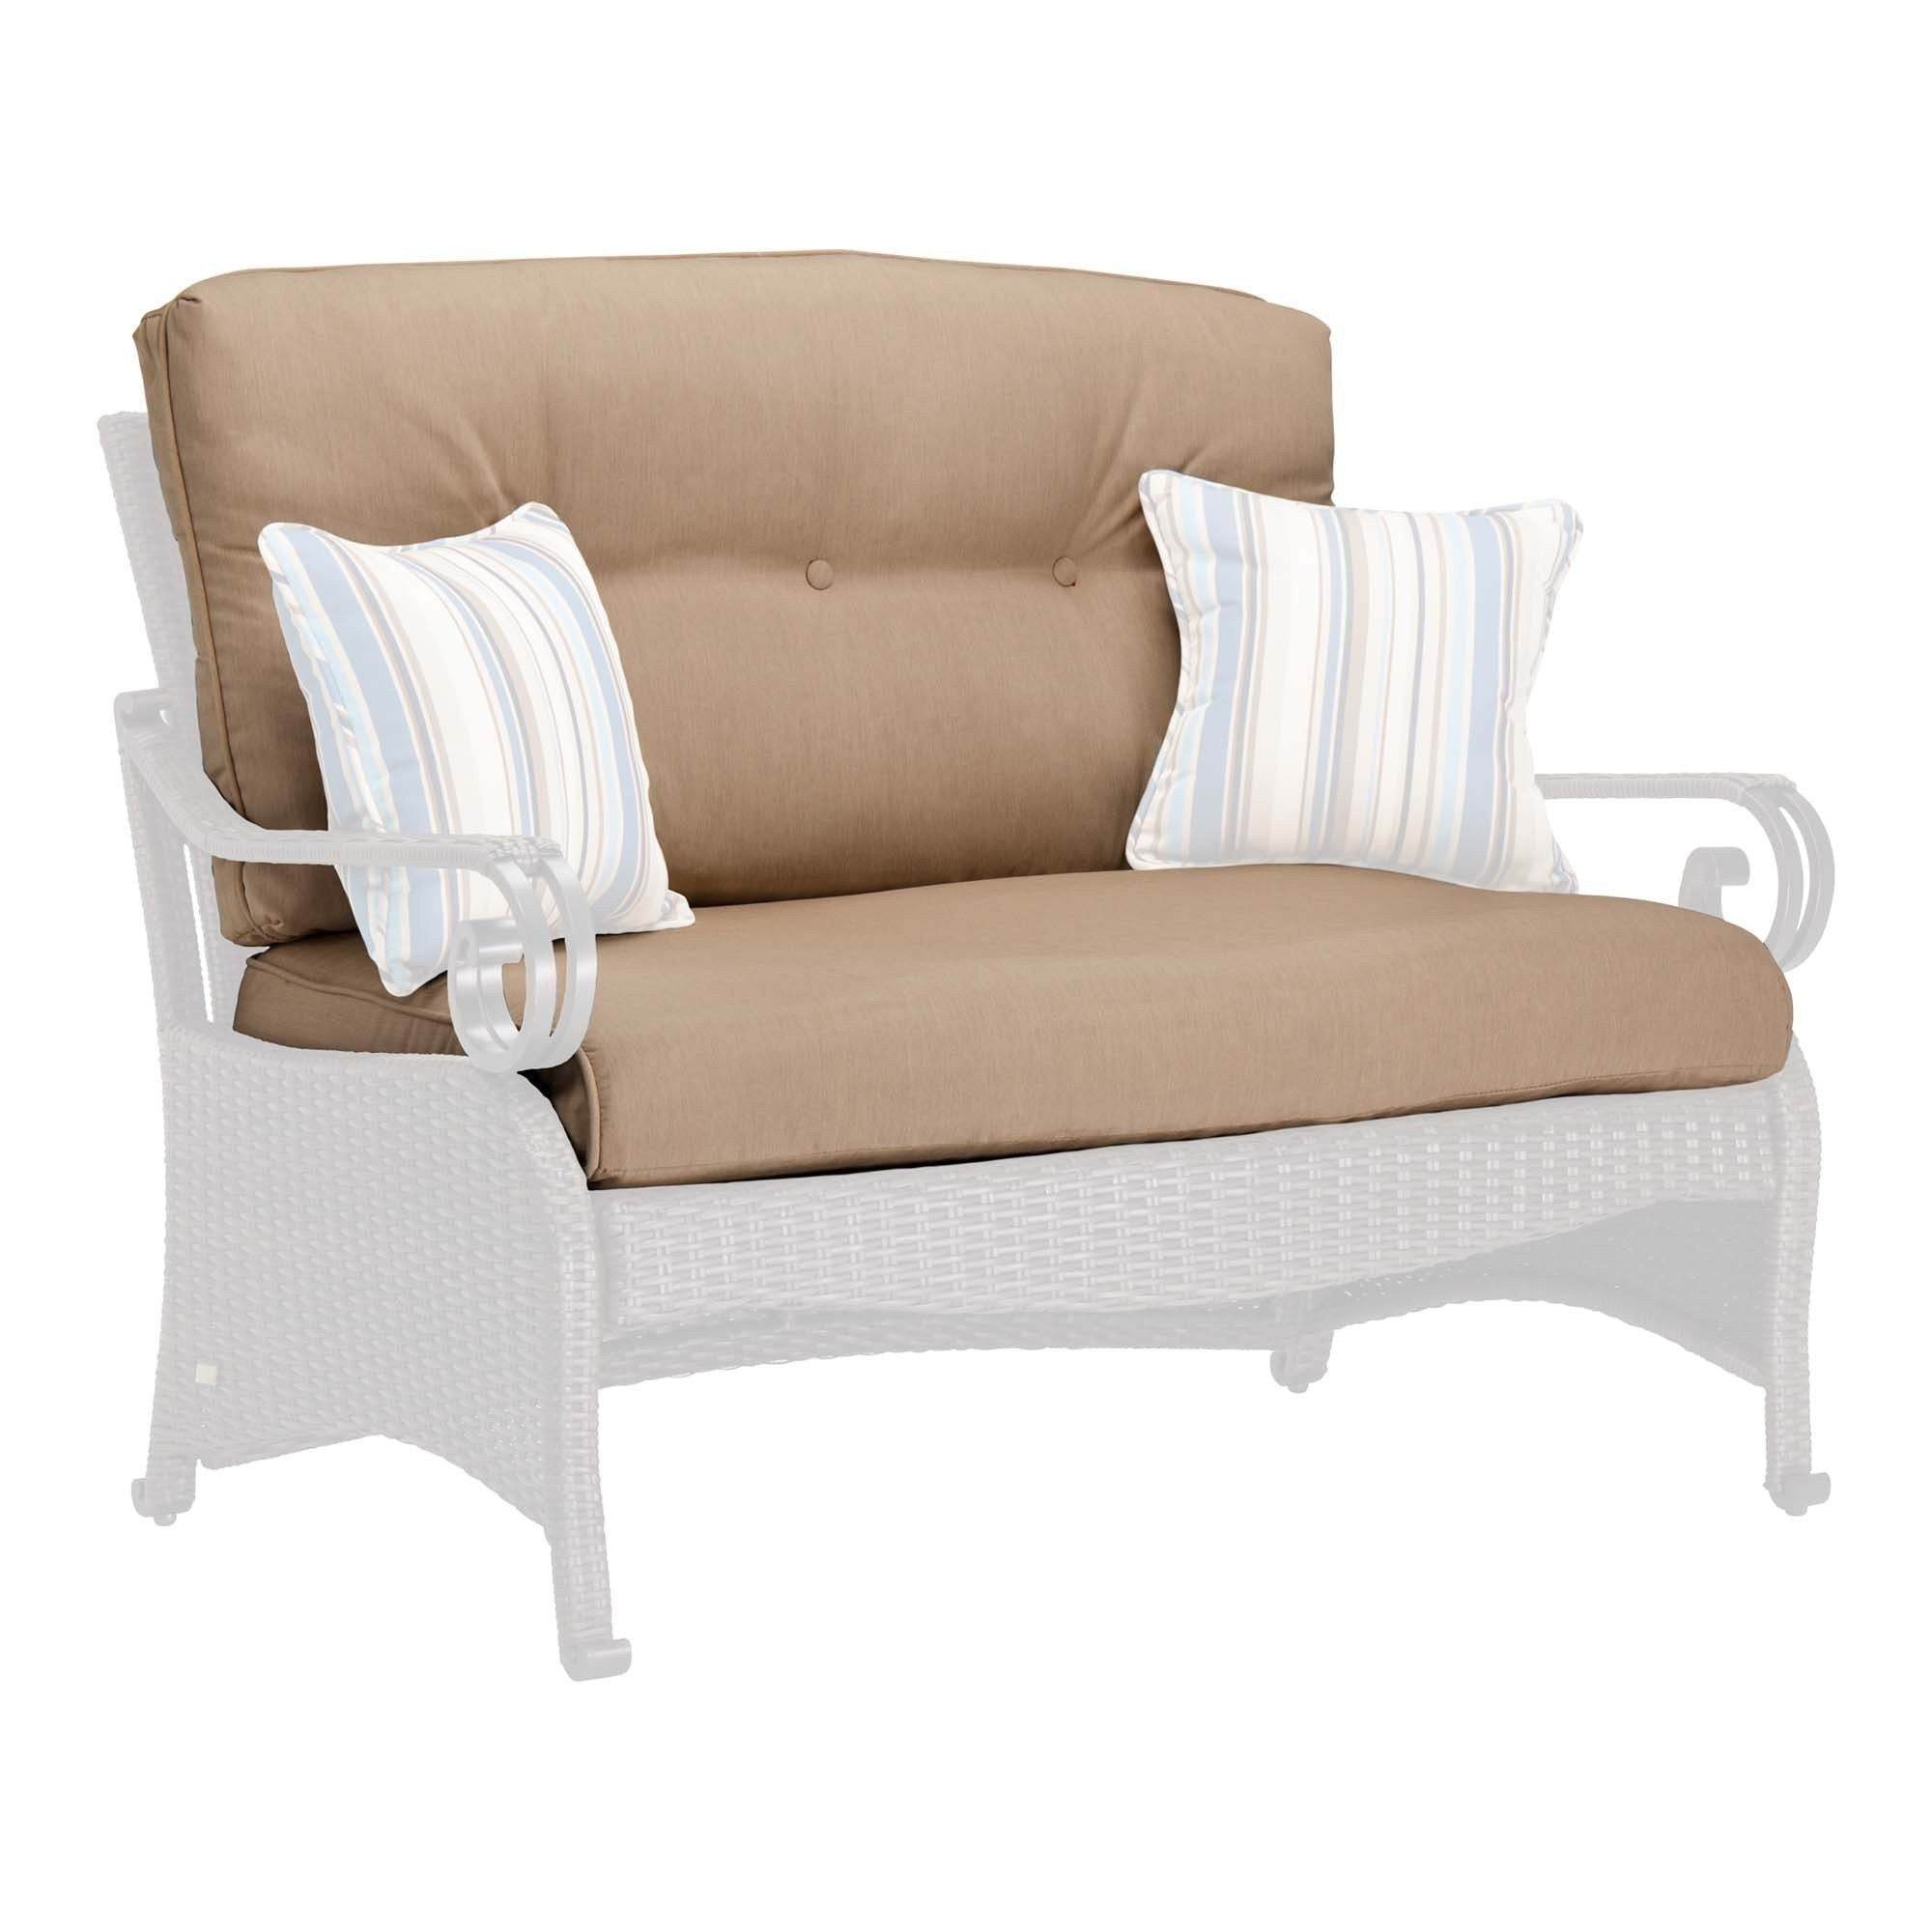 Patio Loveseat Walmart Cover